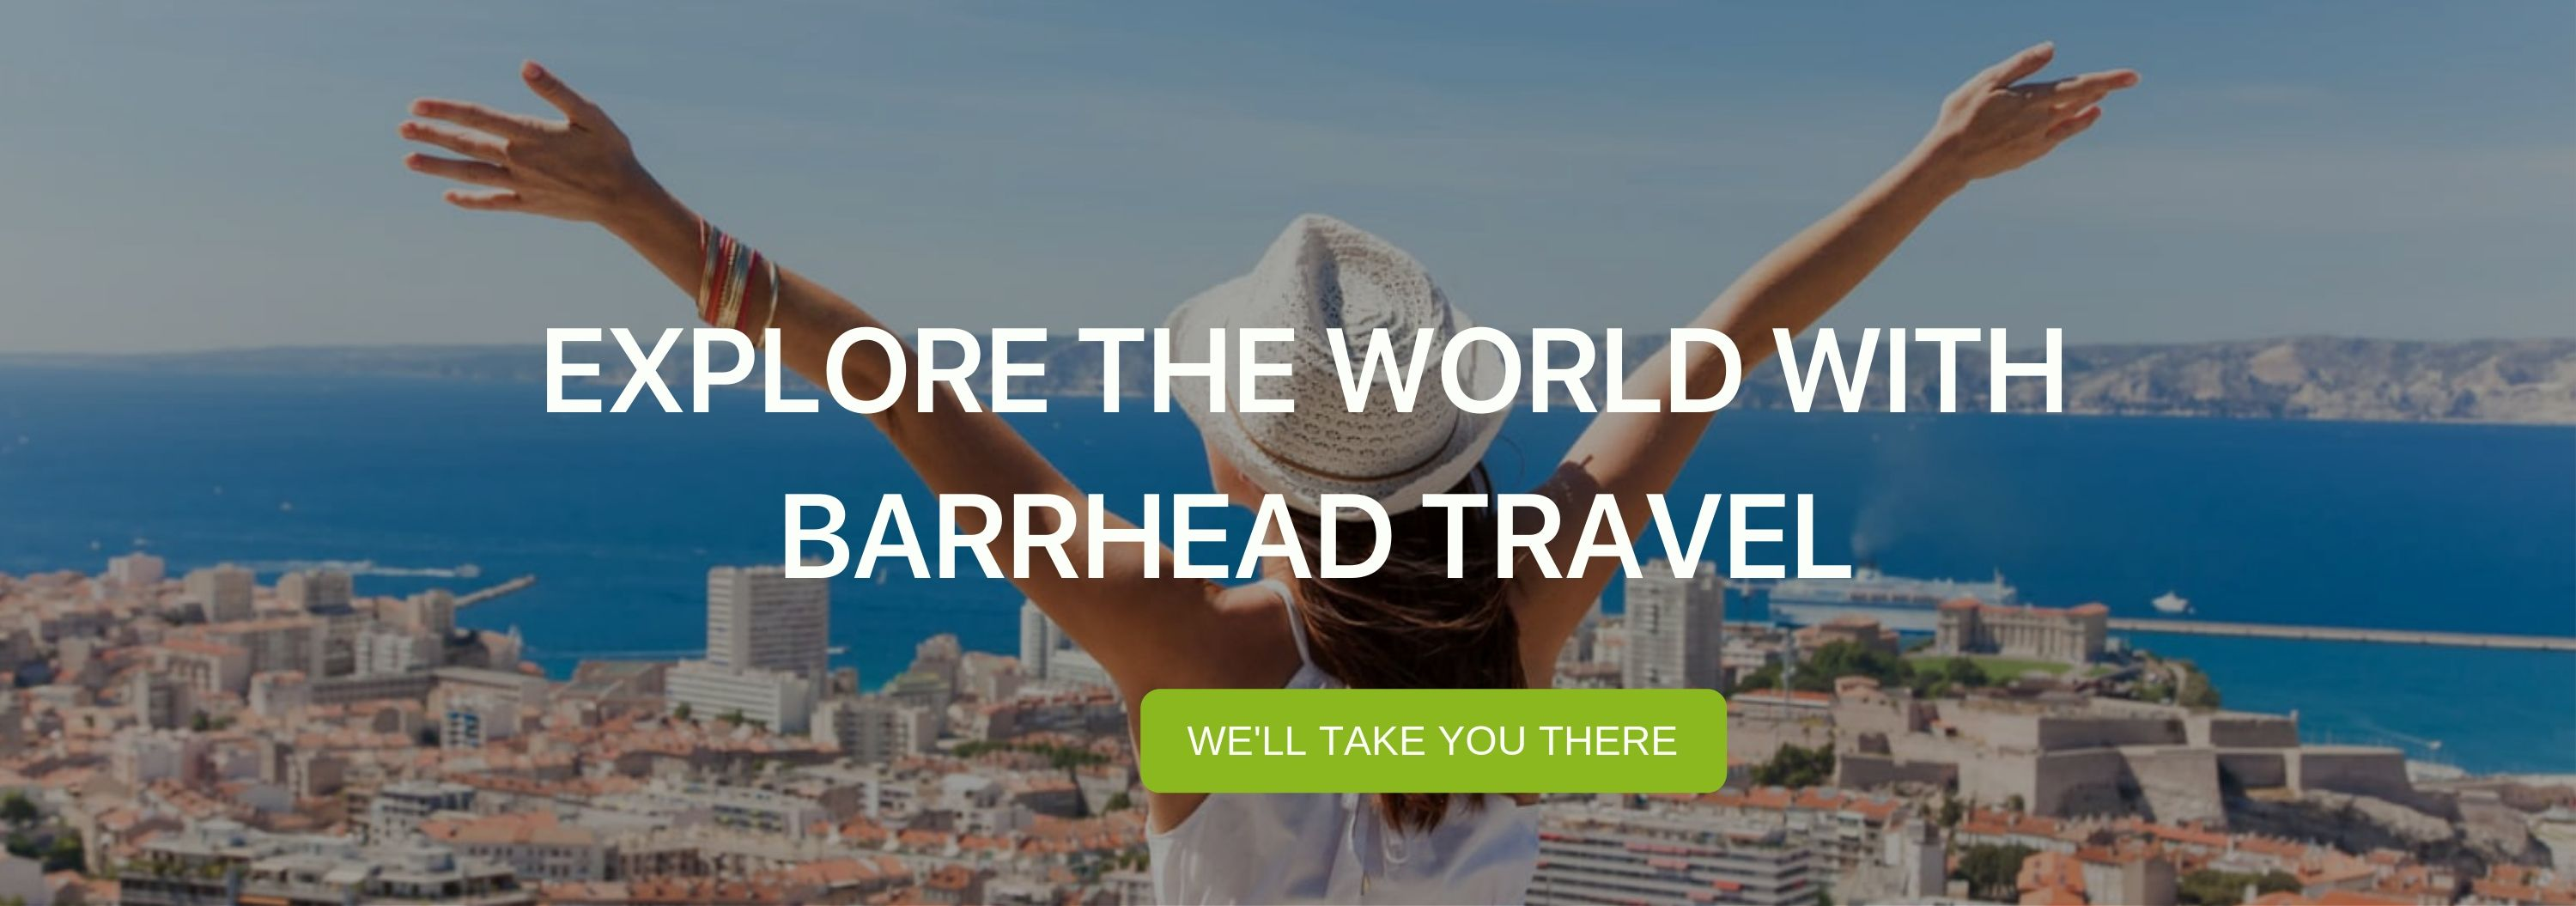 "A banner that says ""Explore the World with Barrhead Travel"""